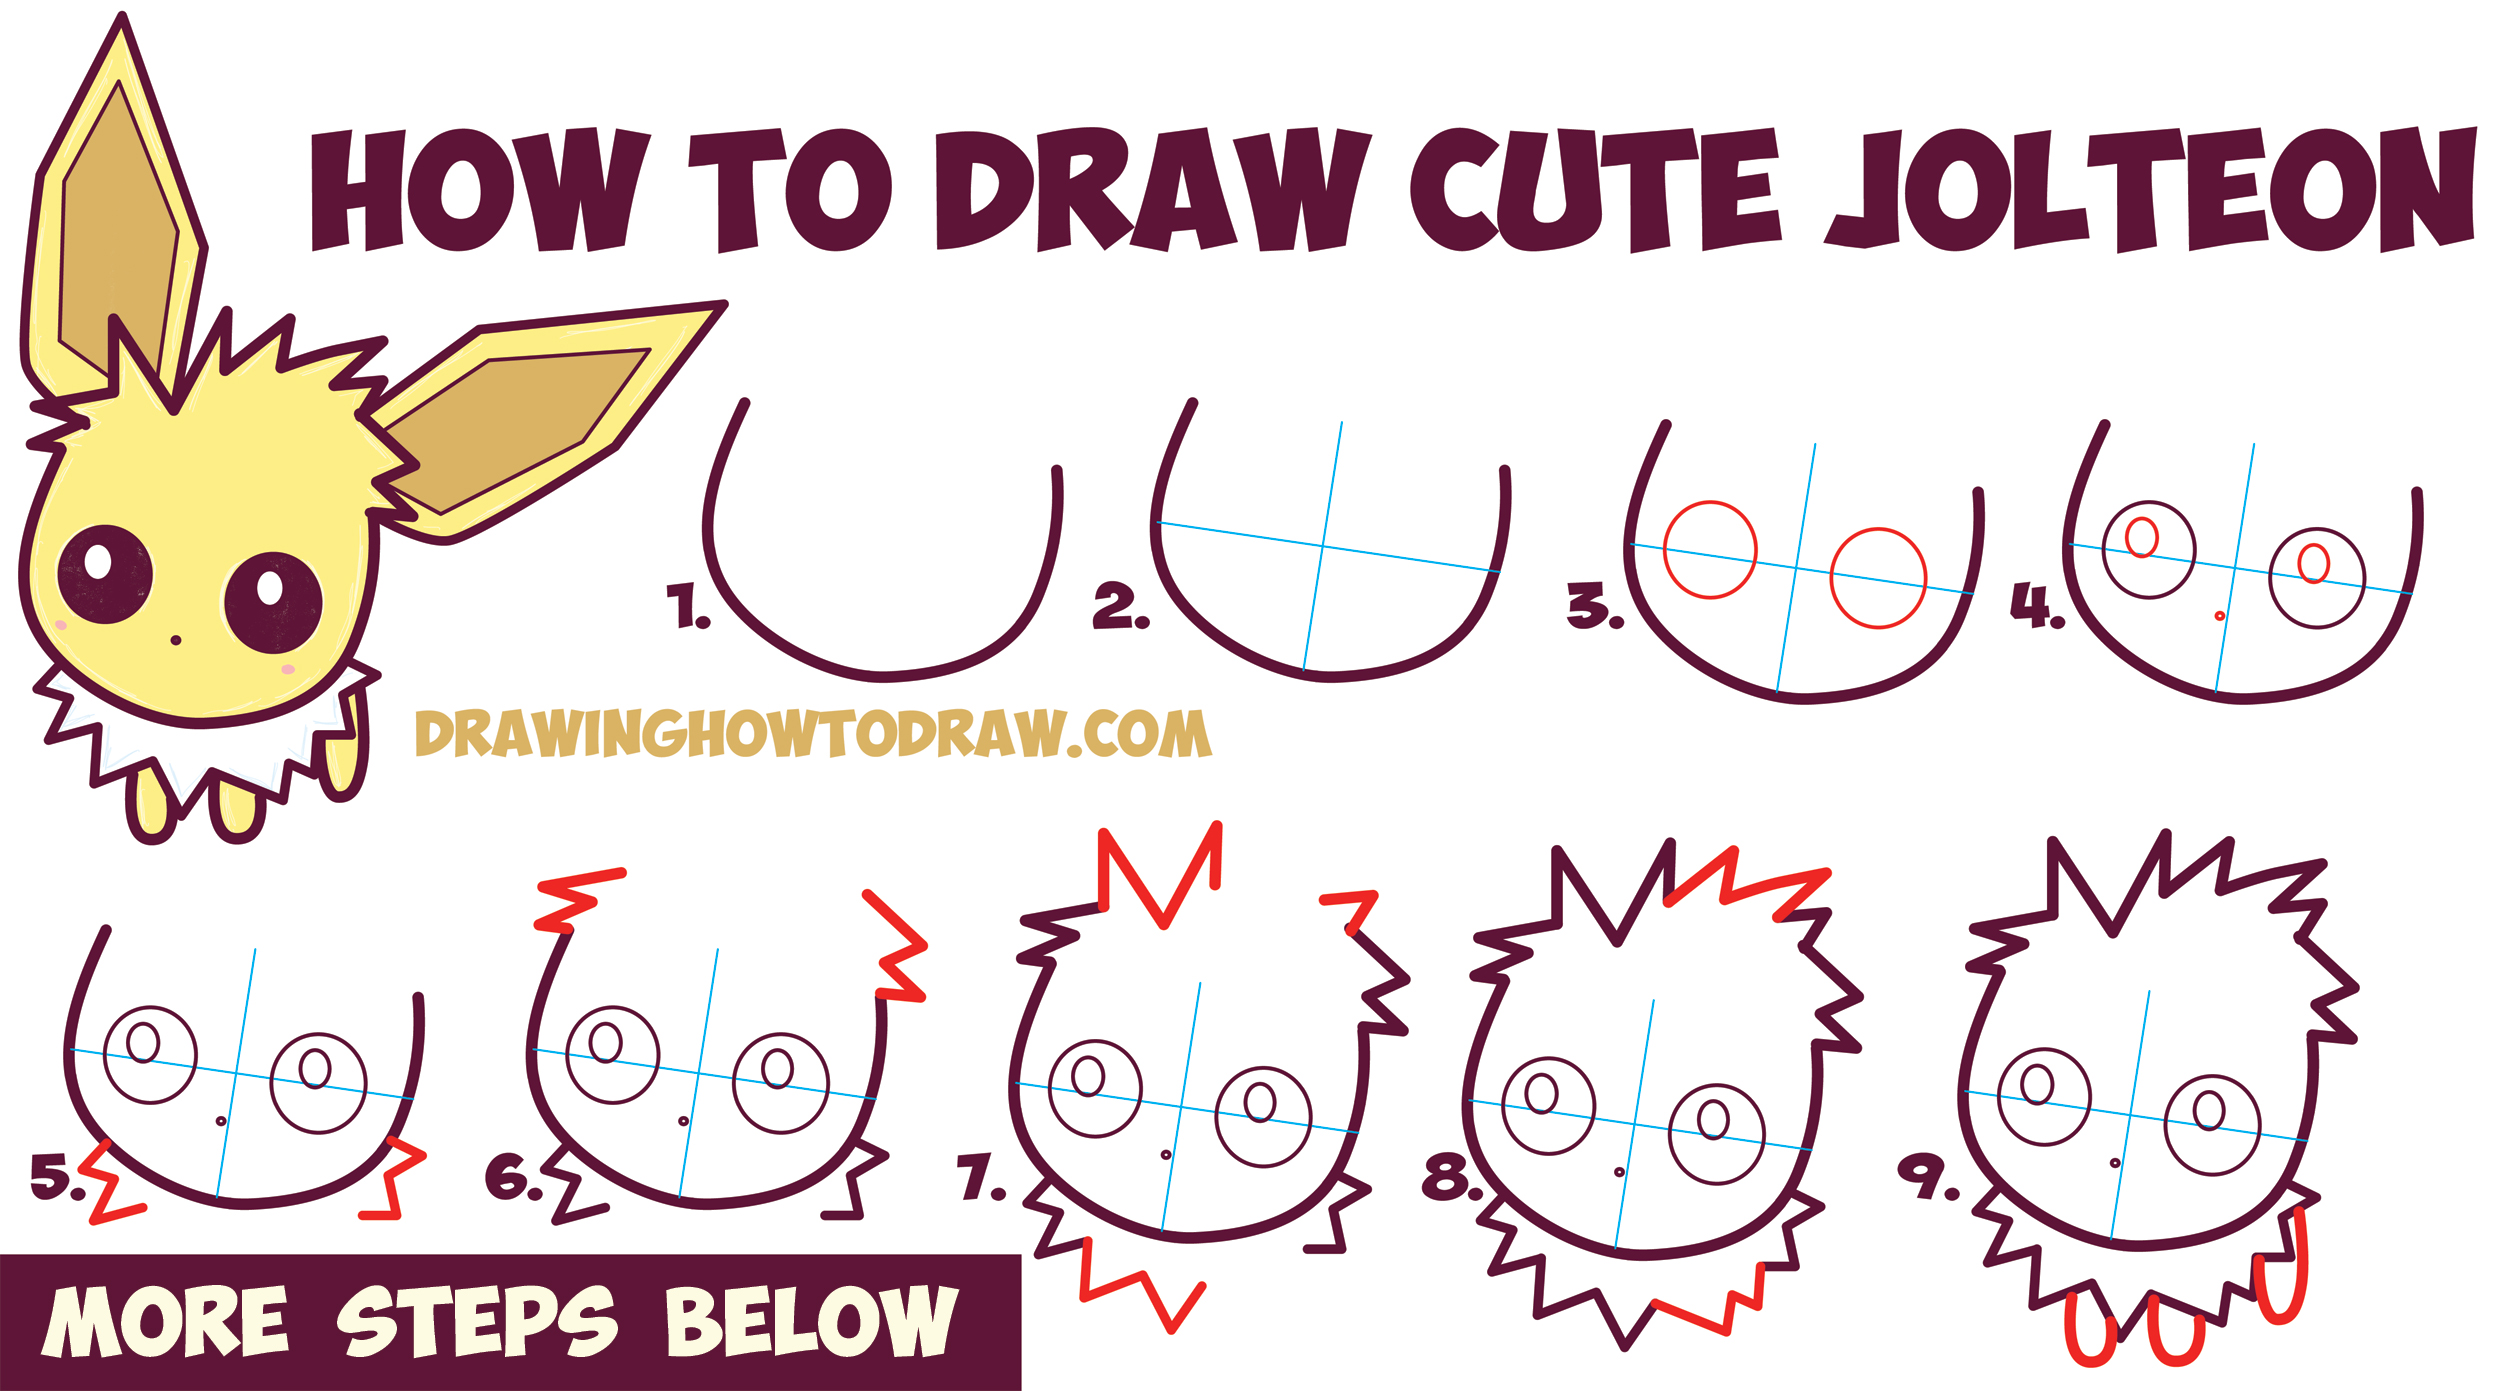 How to Draw Cute / Kawaii / Chibi Jolteon from Pokemon Easy Step by Step Drawing Tutorial for Kids